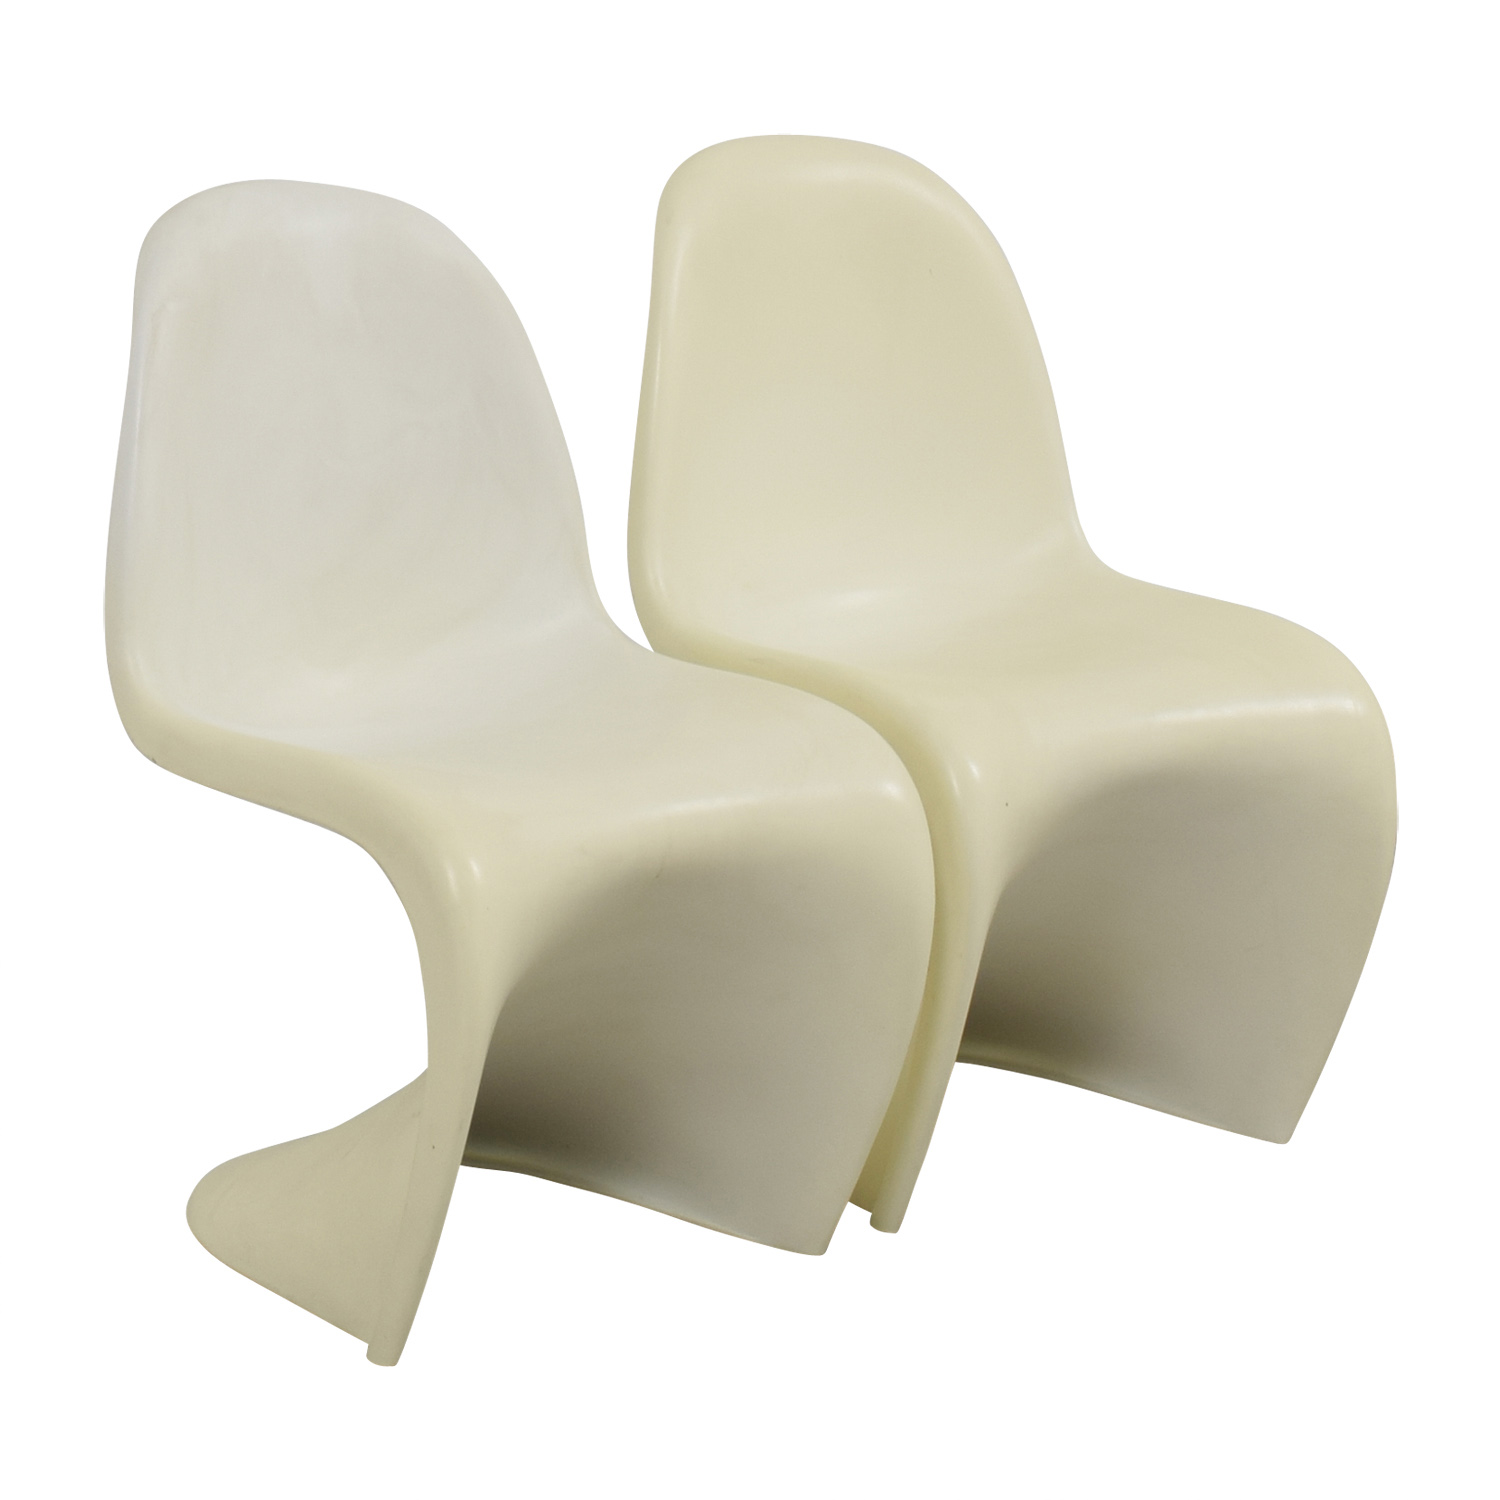 ... Vintage White Mod Chairs Second Hand ...